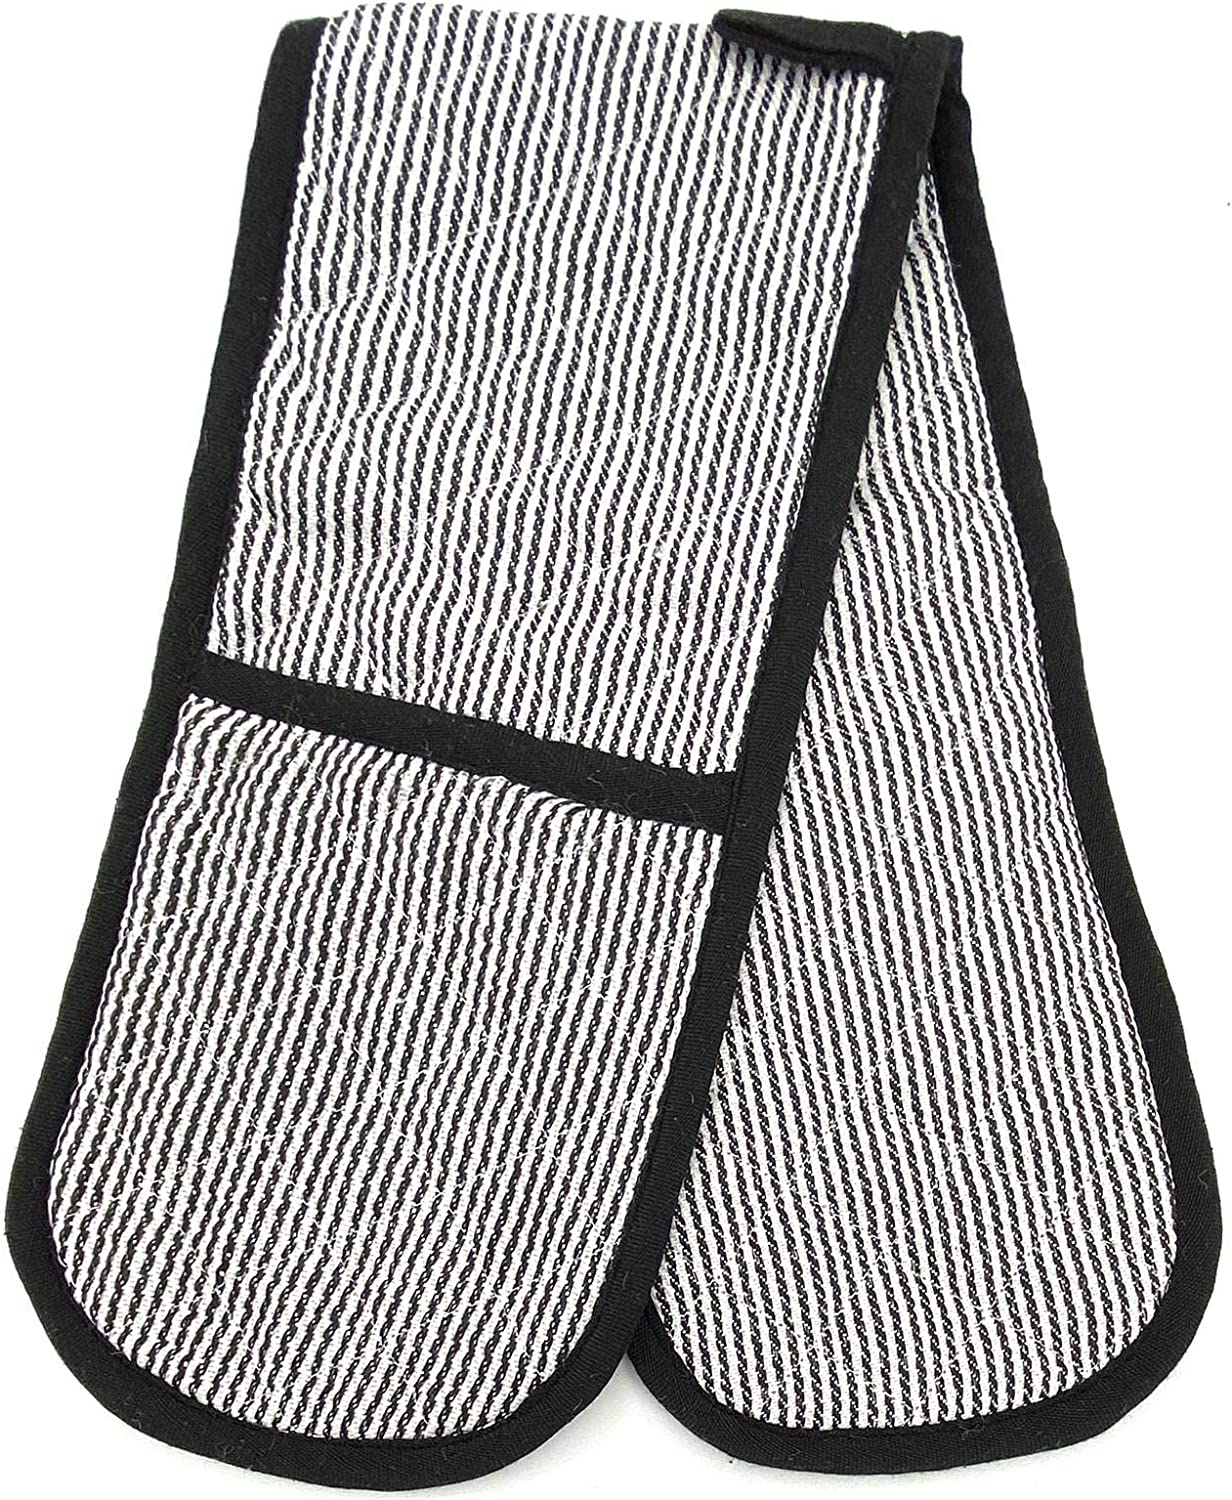 Gr8 Home Butcher Stripe Heat Resistant Thick Padded Double Oven Gloves Quilted Pinstripe Plain Kitchen BBQ Baking Mitts Black Plain Double